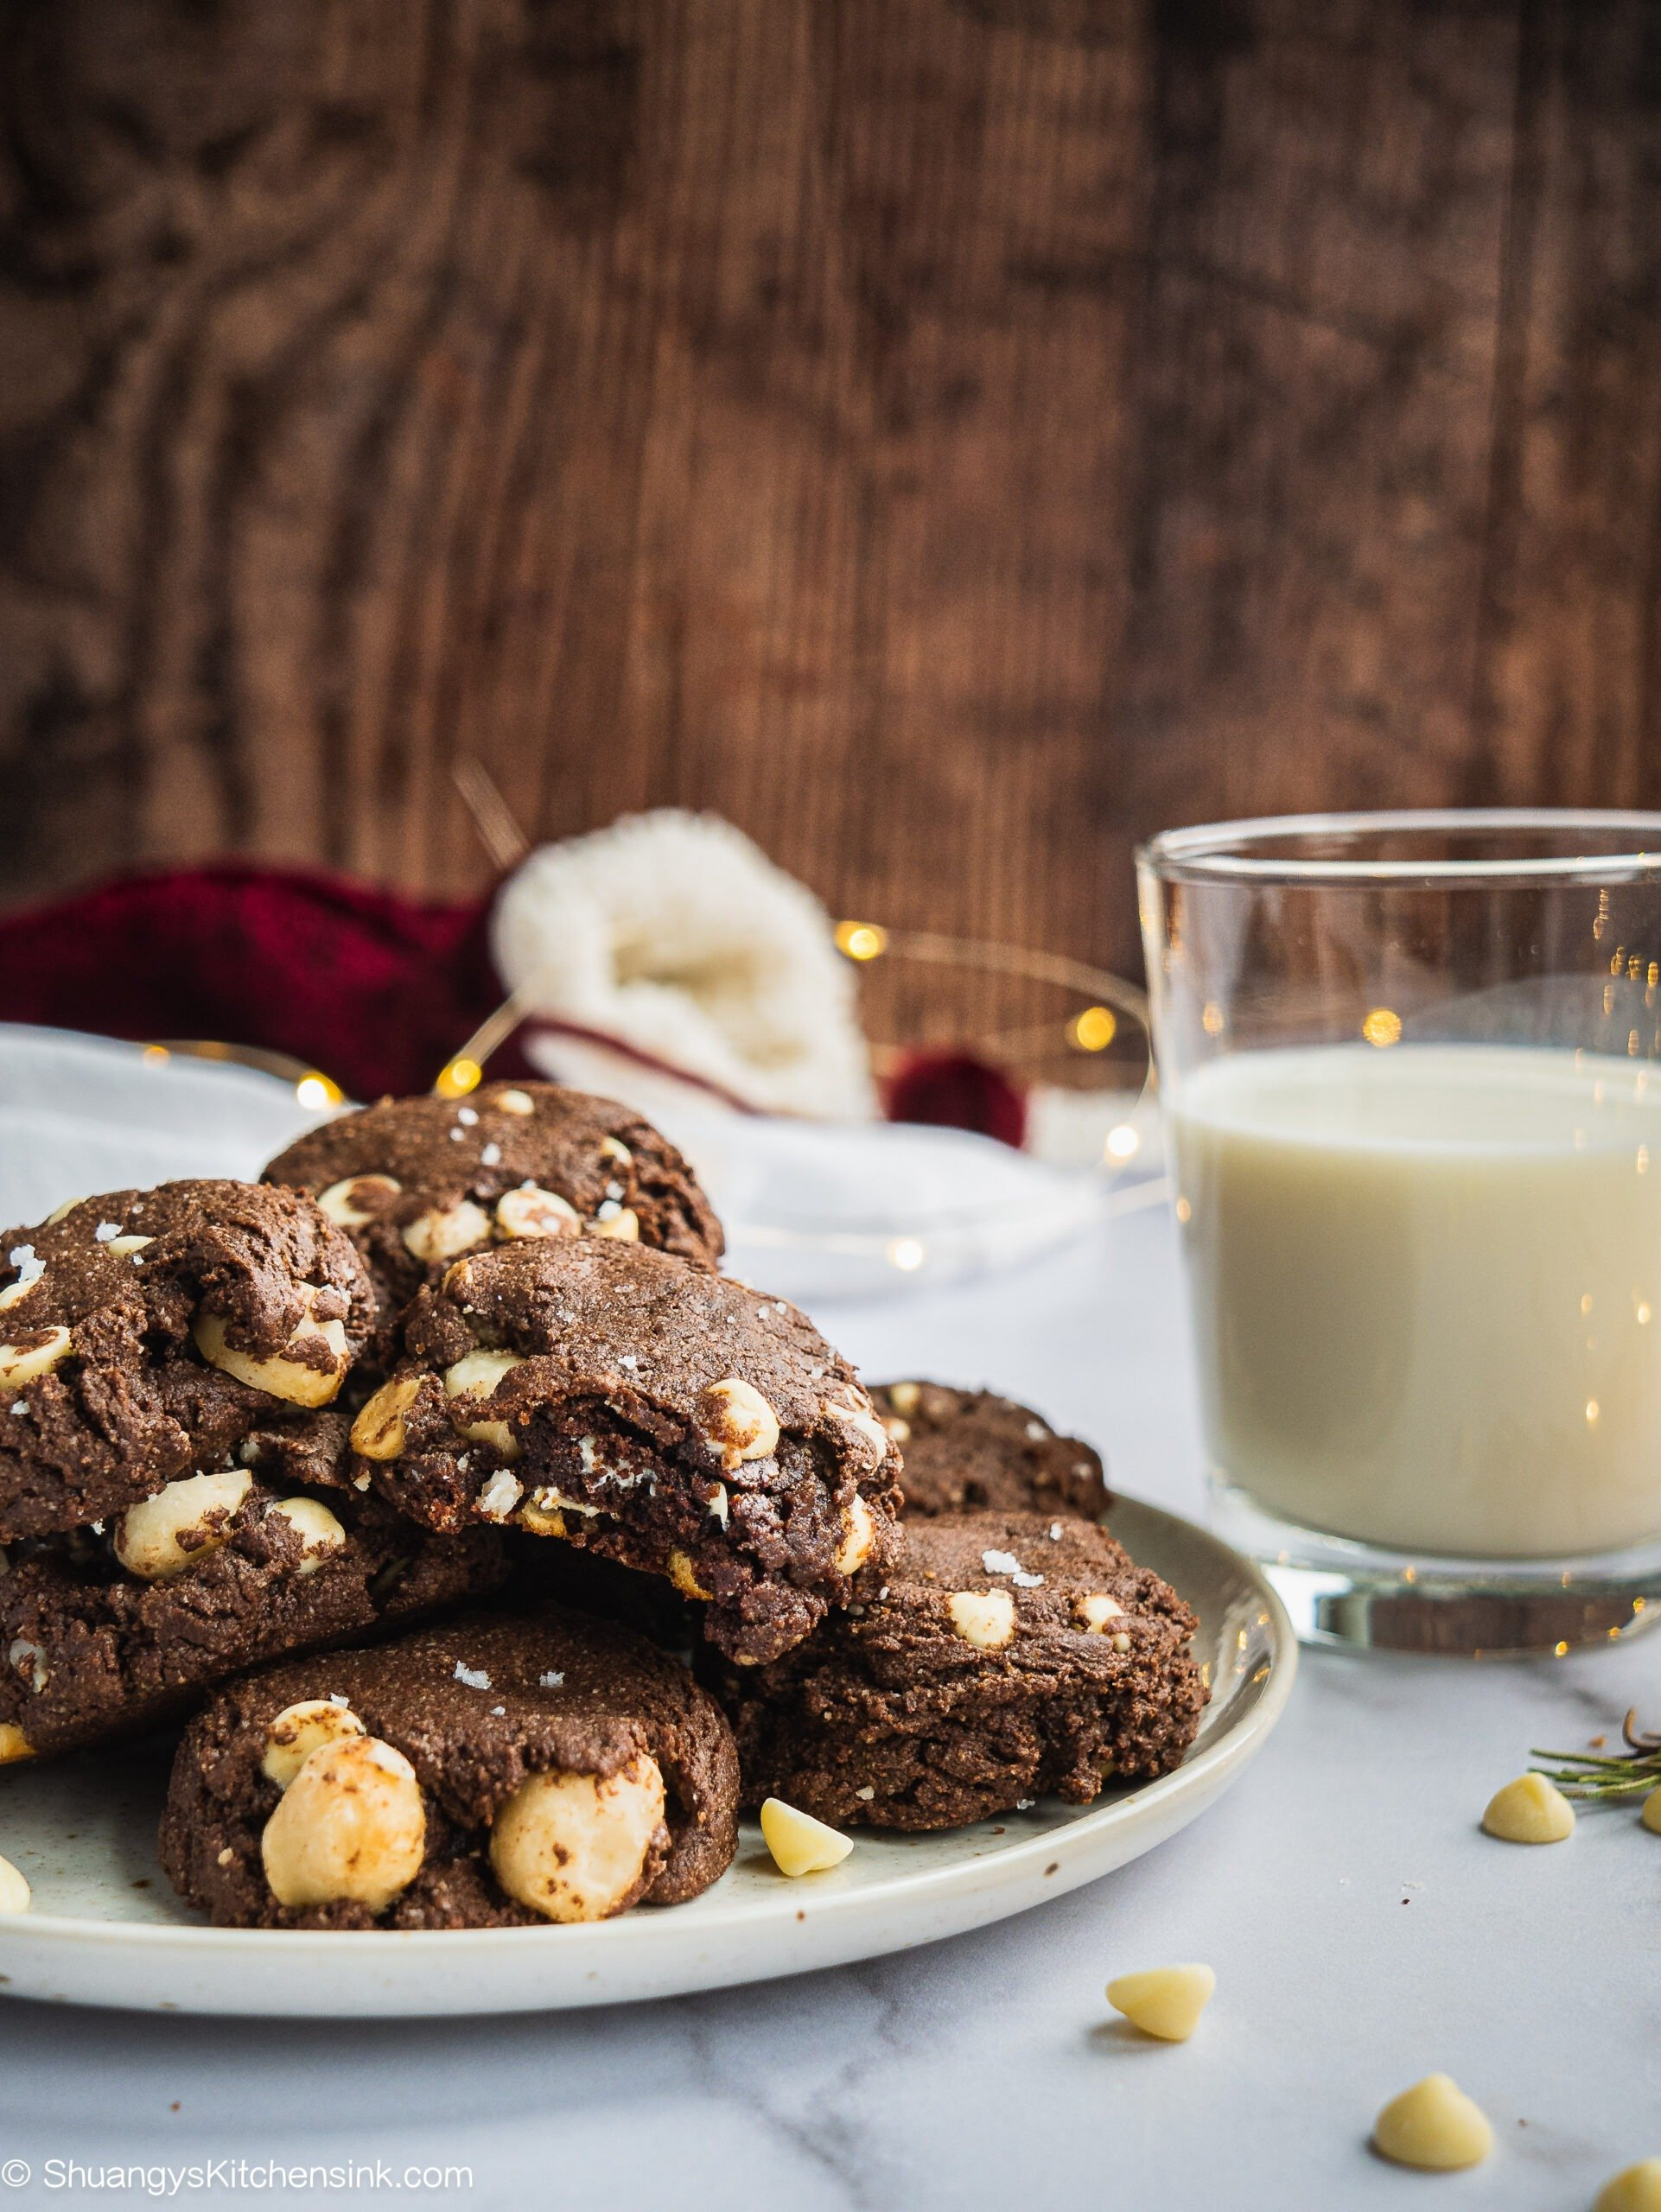 A Plate of White Chocolate Macadamia Nut cookies with a glass of milk in the background. One of them has a bite in it. There are Christmas lights in the background.